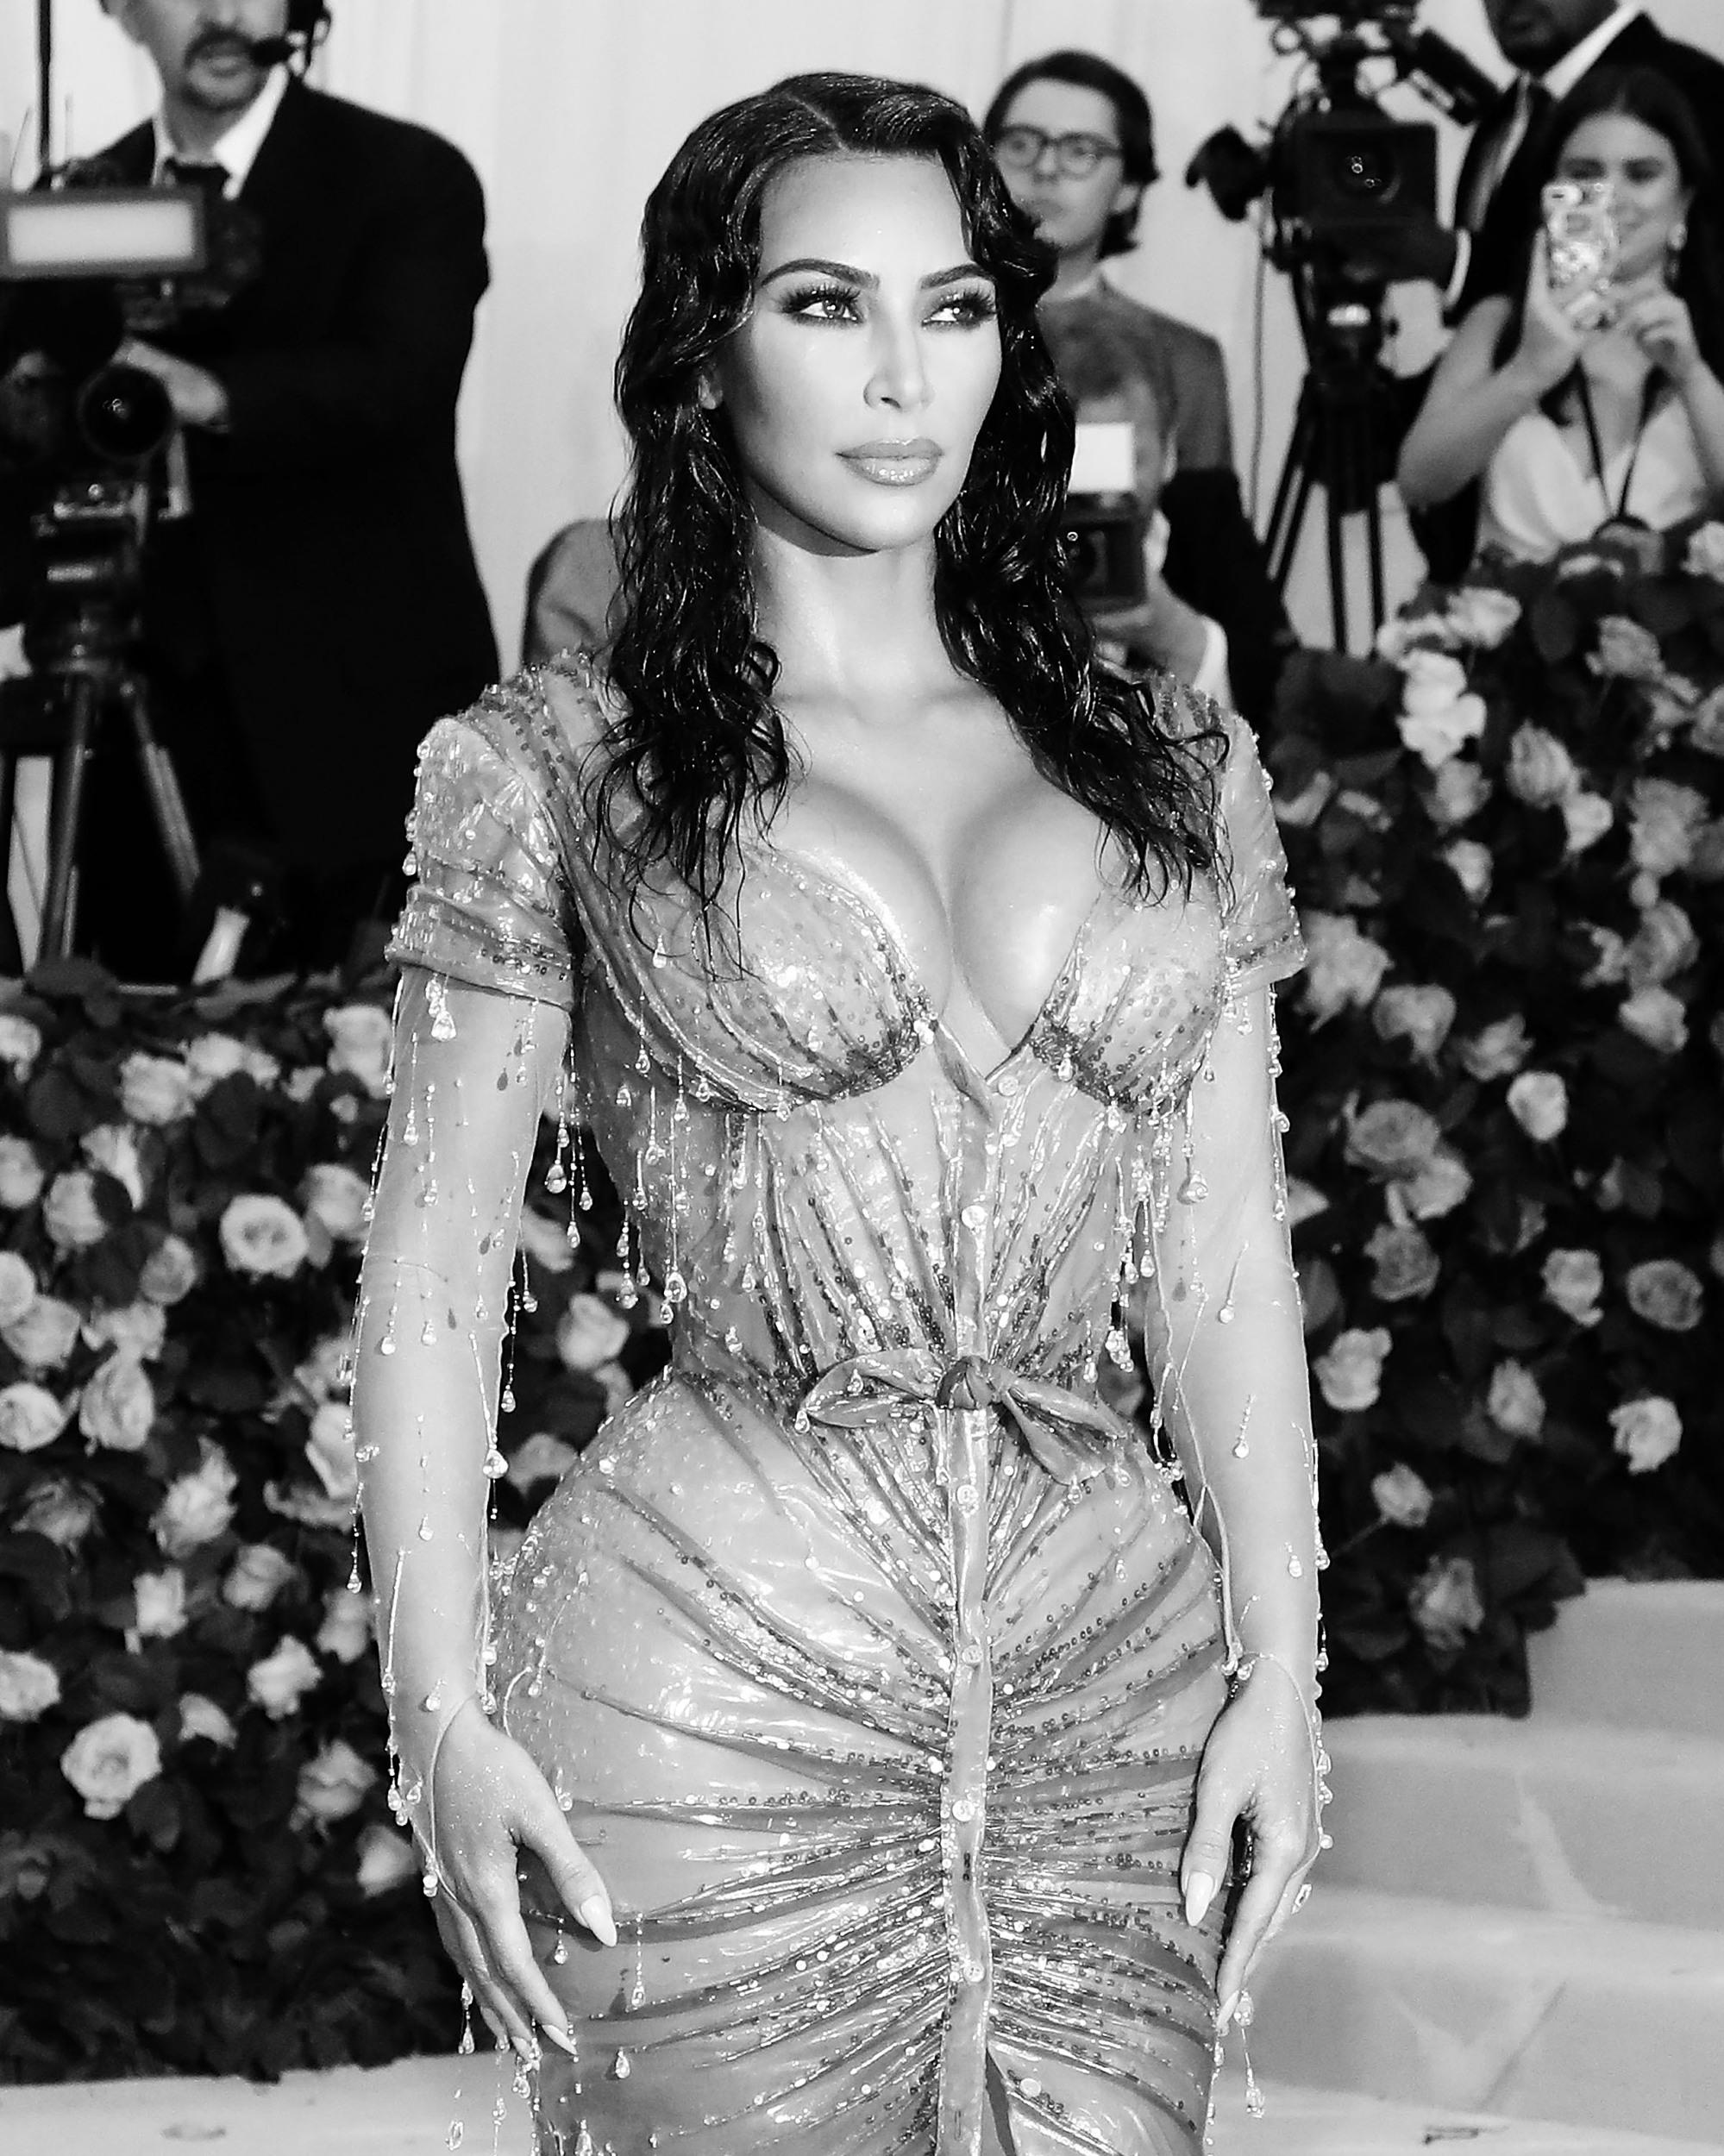 NEW YORK, NY - MAY 06: (EDITOR'S NOTE: Image was converted to black and white)  Kim Kardashian West attends The 2019 Met Gala Celebrating Camp: Notes on Fashion at Metropolitan Museum of Art on May 06, 2019 in New York City.(Photo by Taylor Hill/FilmMagic)